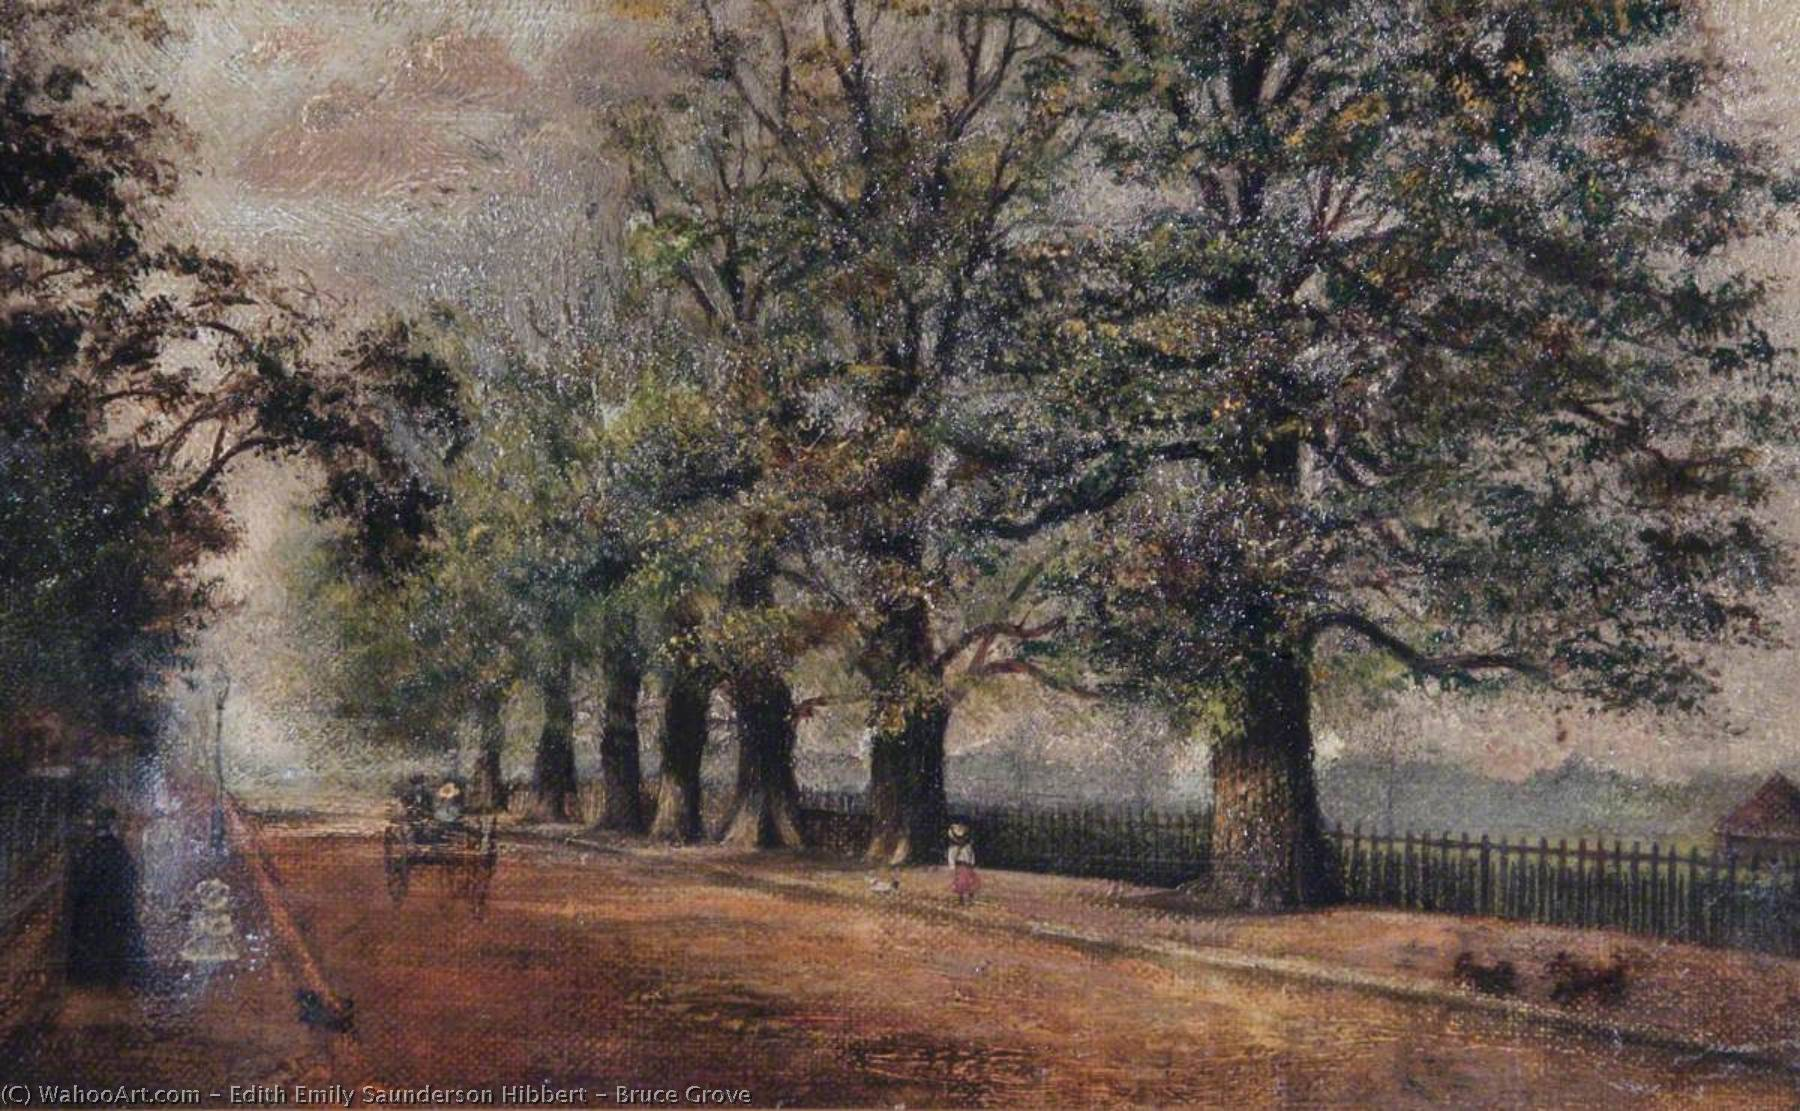 Order Paintings Reproductions | Bruce Grove, 1886 by Edith Emily Saunderson Hibbert | WahooArt.com